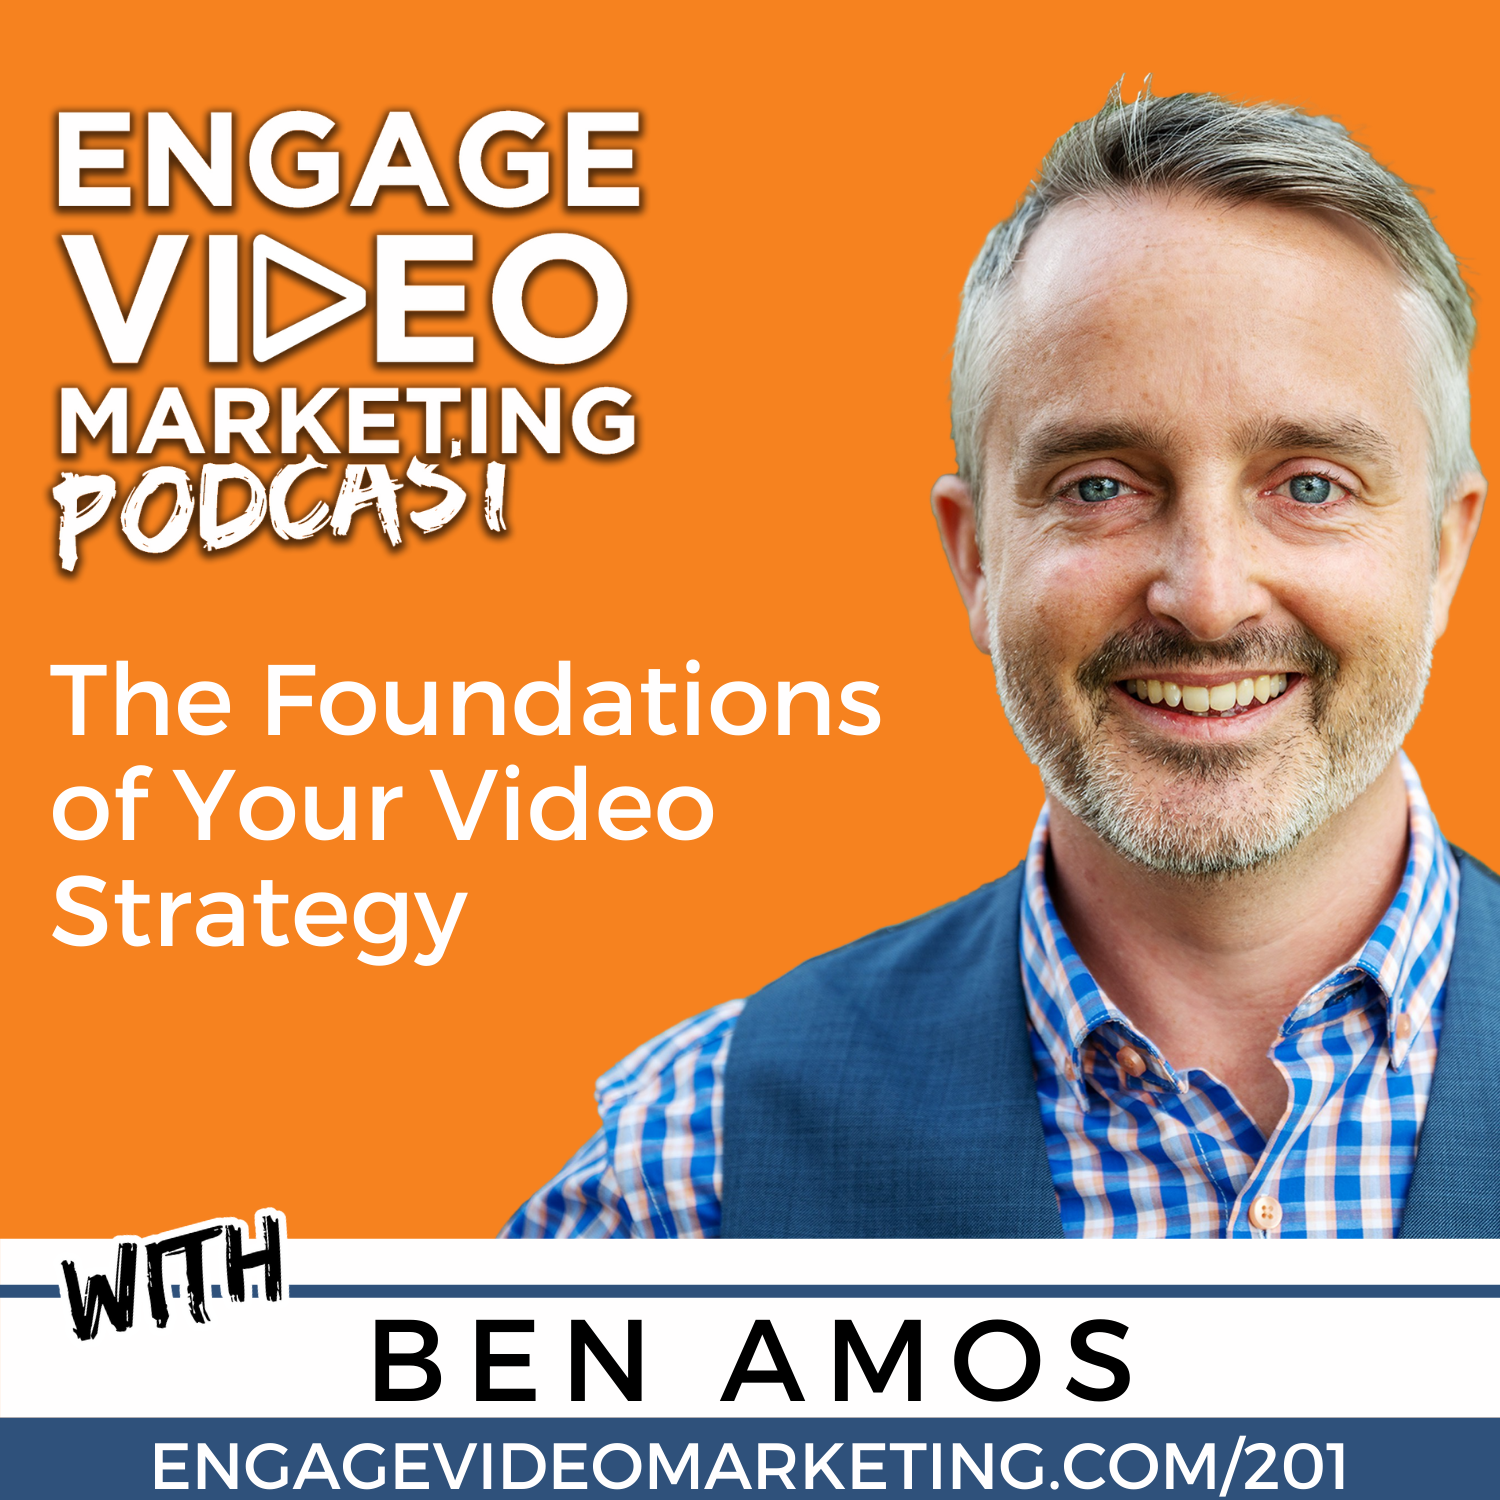 The Foundations of Your Video Strategy